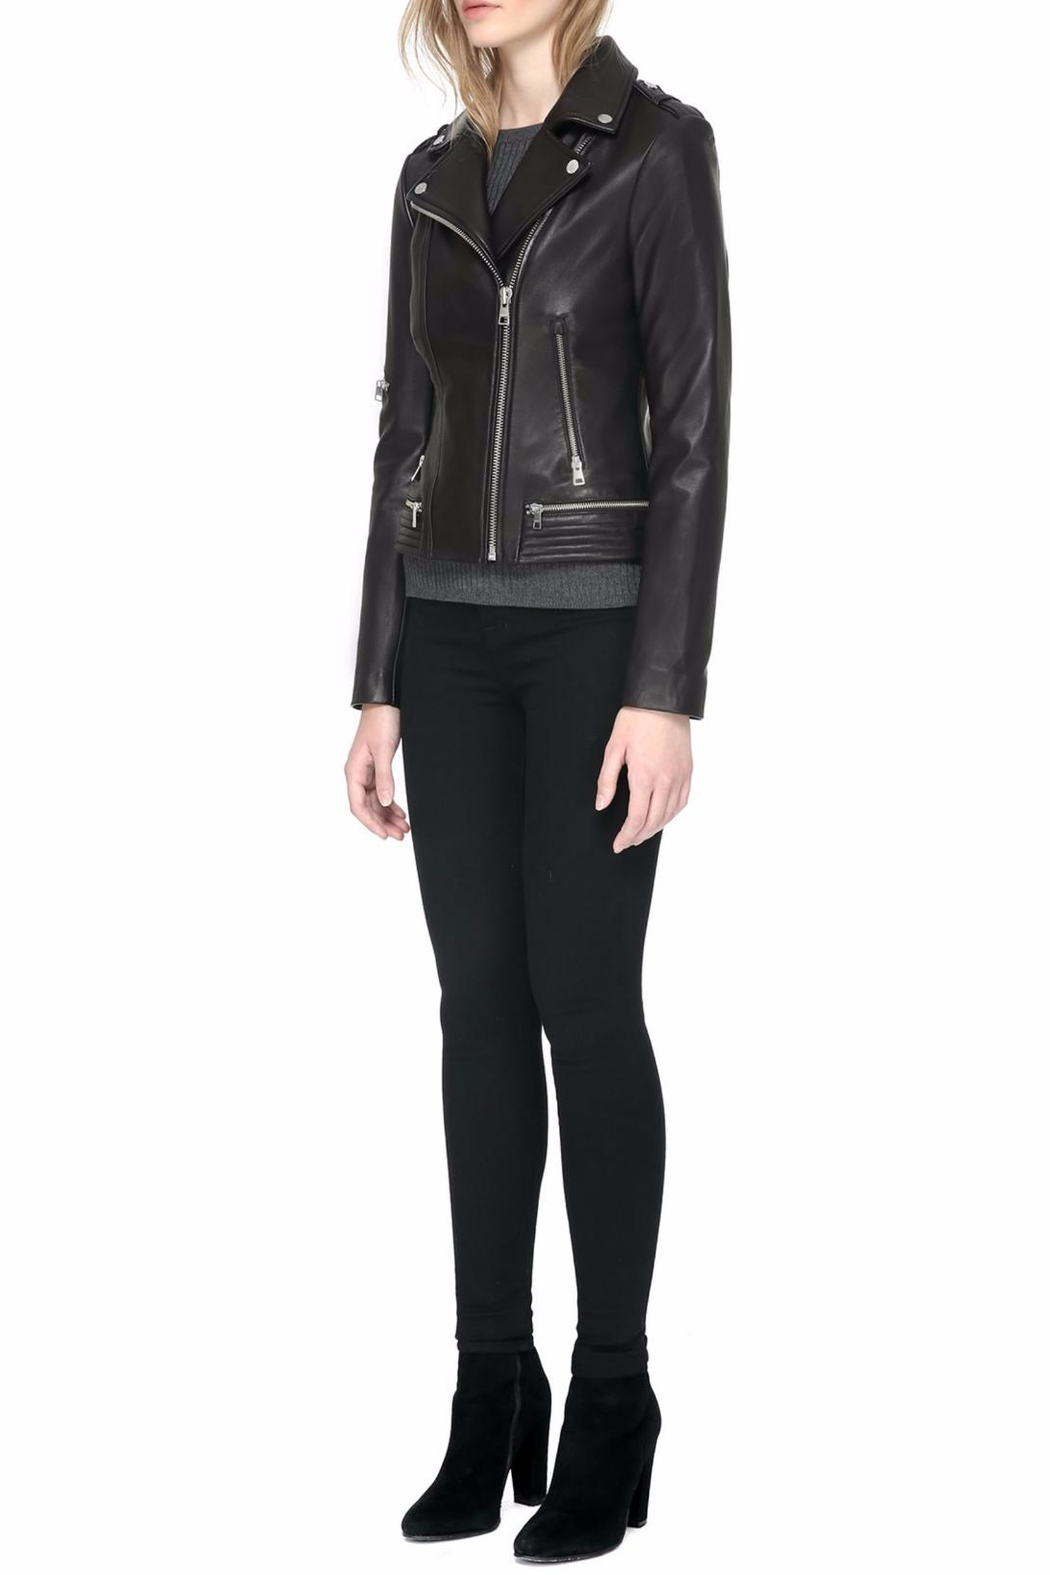 Soia & Kyo Jasmina Leather Jacket - Side Cropped Image